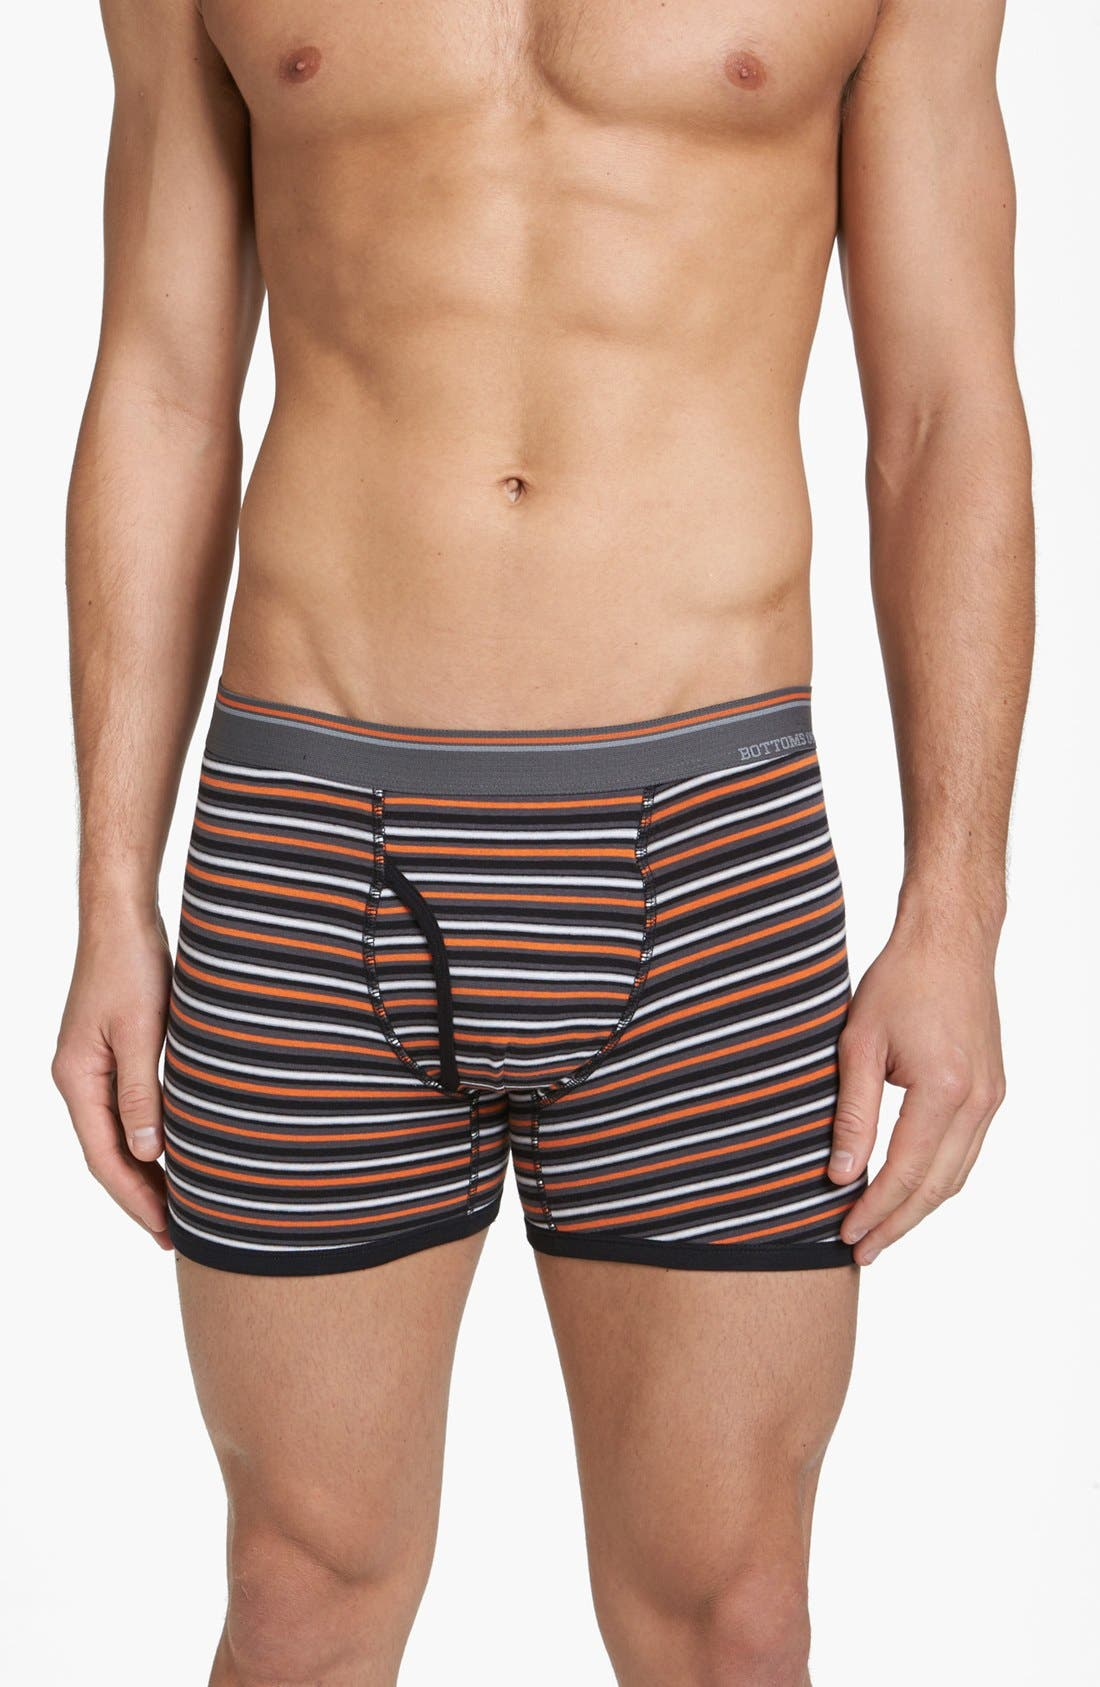 Alternate Image 3  - Basic Underwear 'Bottoms Out' Stripe Boxer Briefs (3-Pack)